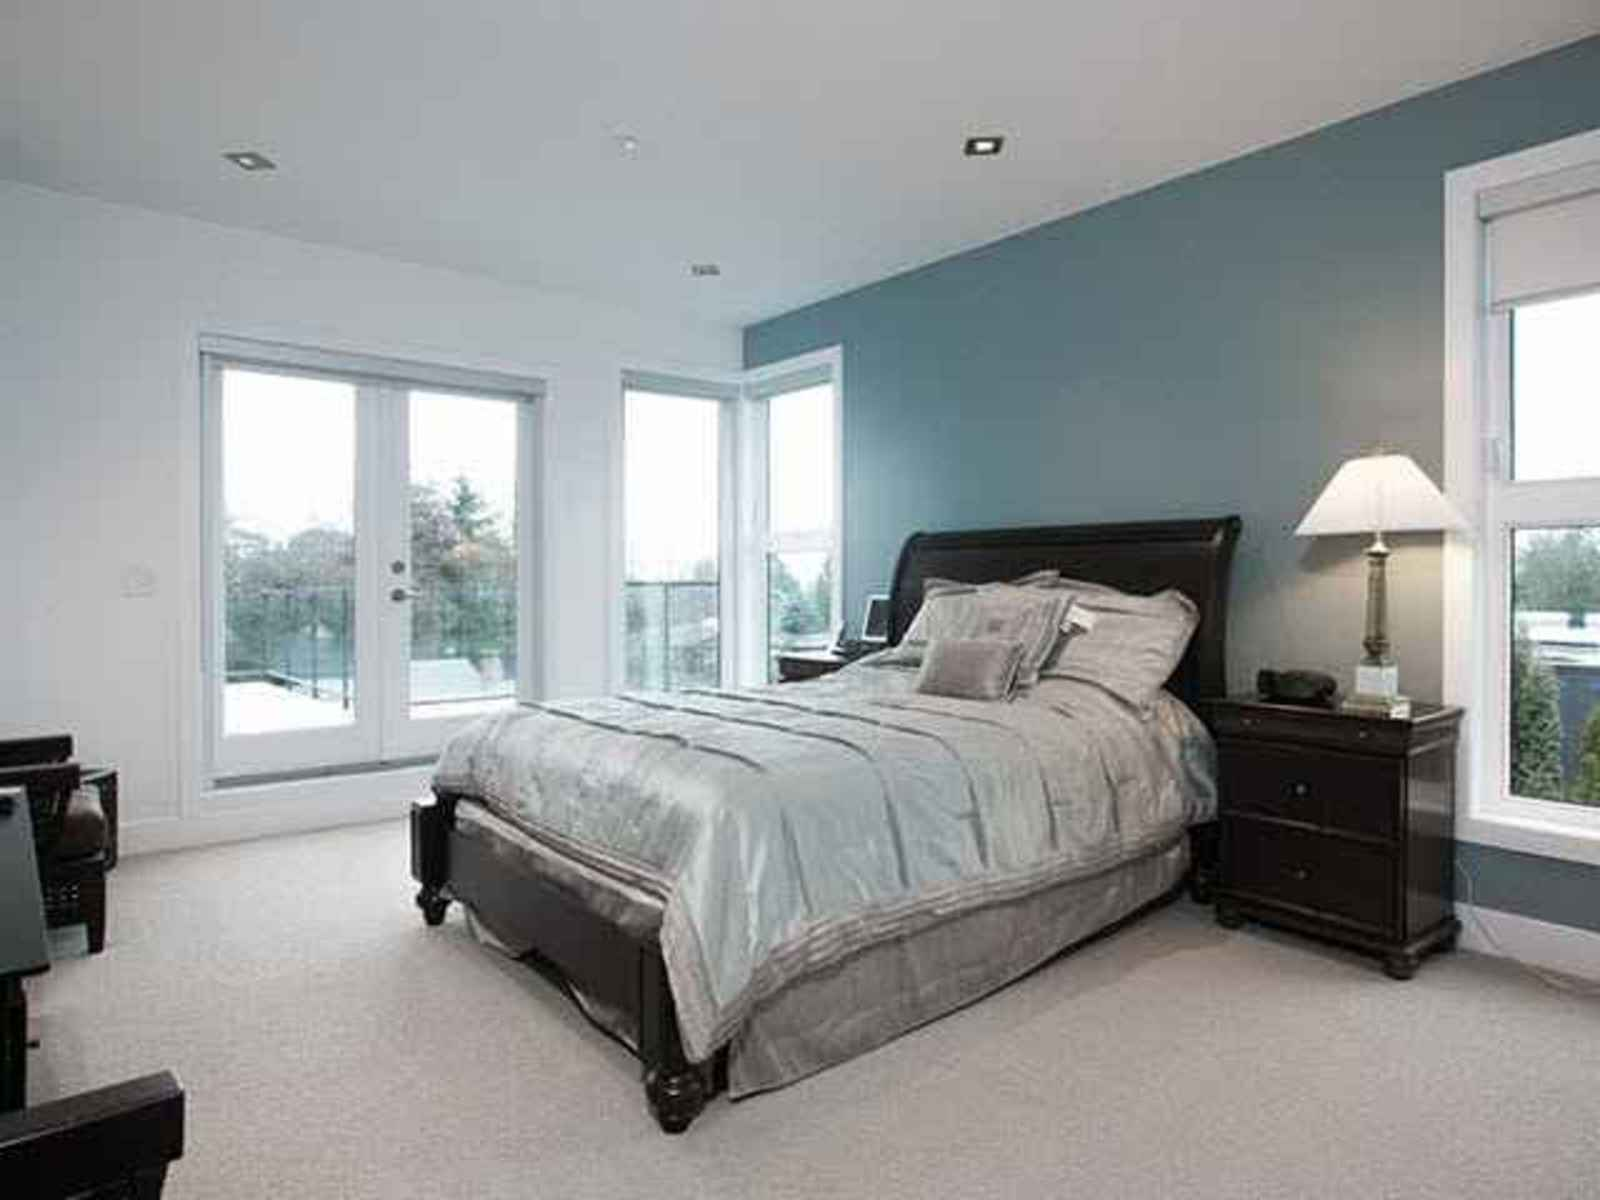 261916479-9 at 1838 Mathers Court, Ambleside, West Vancouver